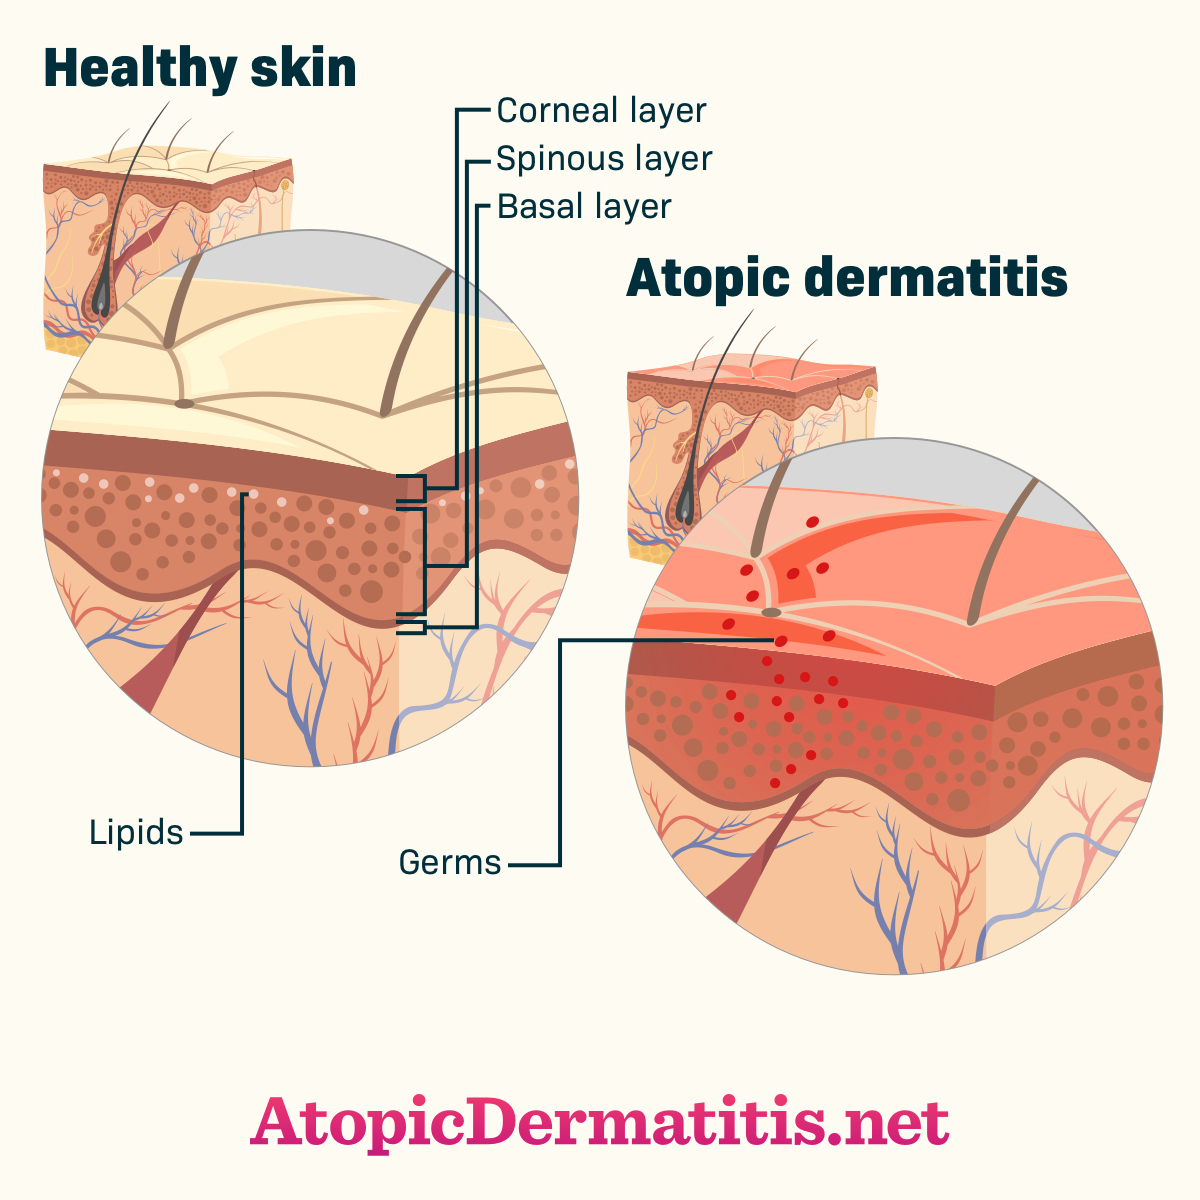 How Does Atopic Dermatitis Affect The Skin And Body